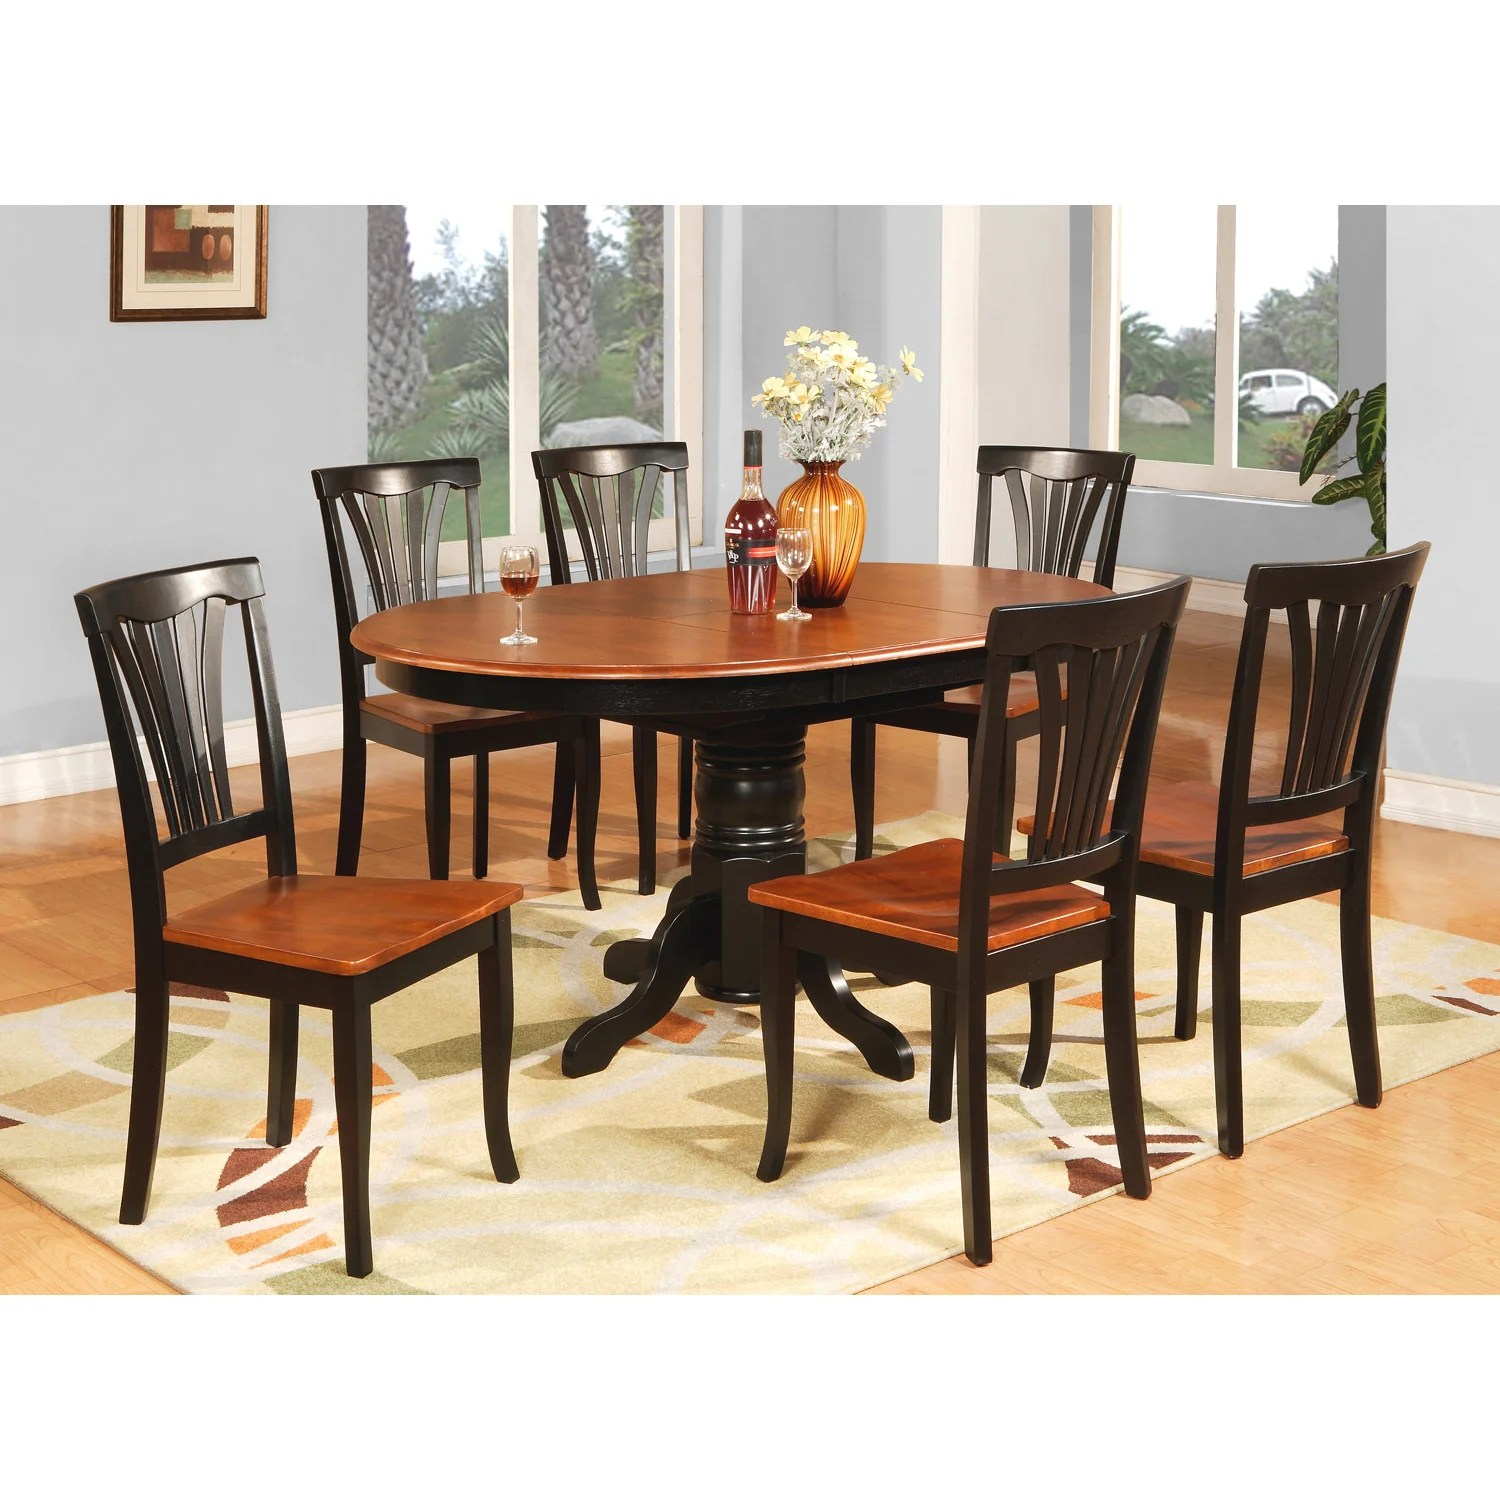 kitchen dining room sets c 4 person kitchen table Attamore 7 Piece Dining Set